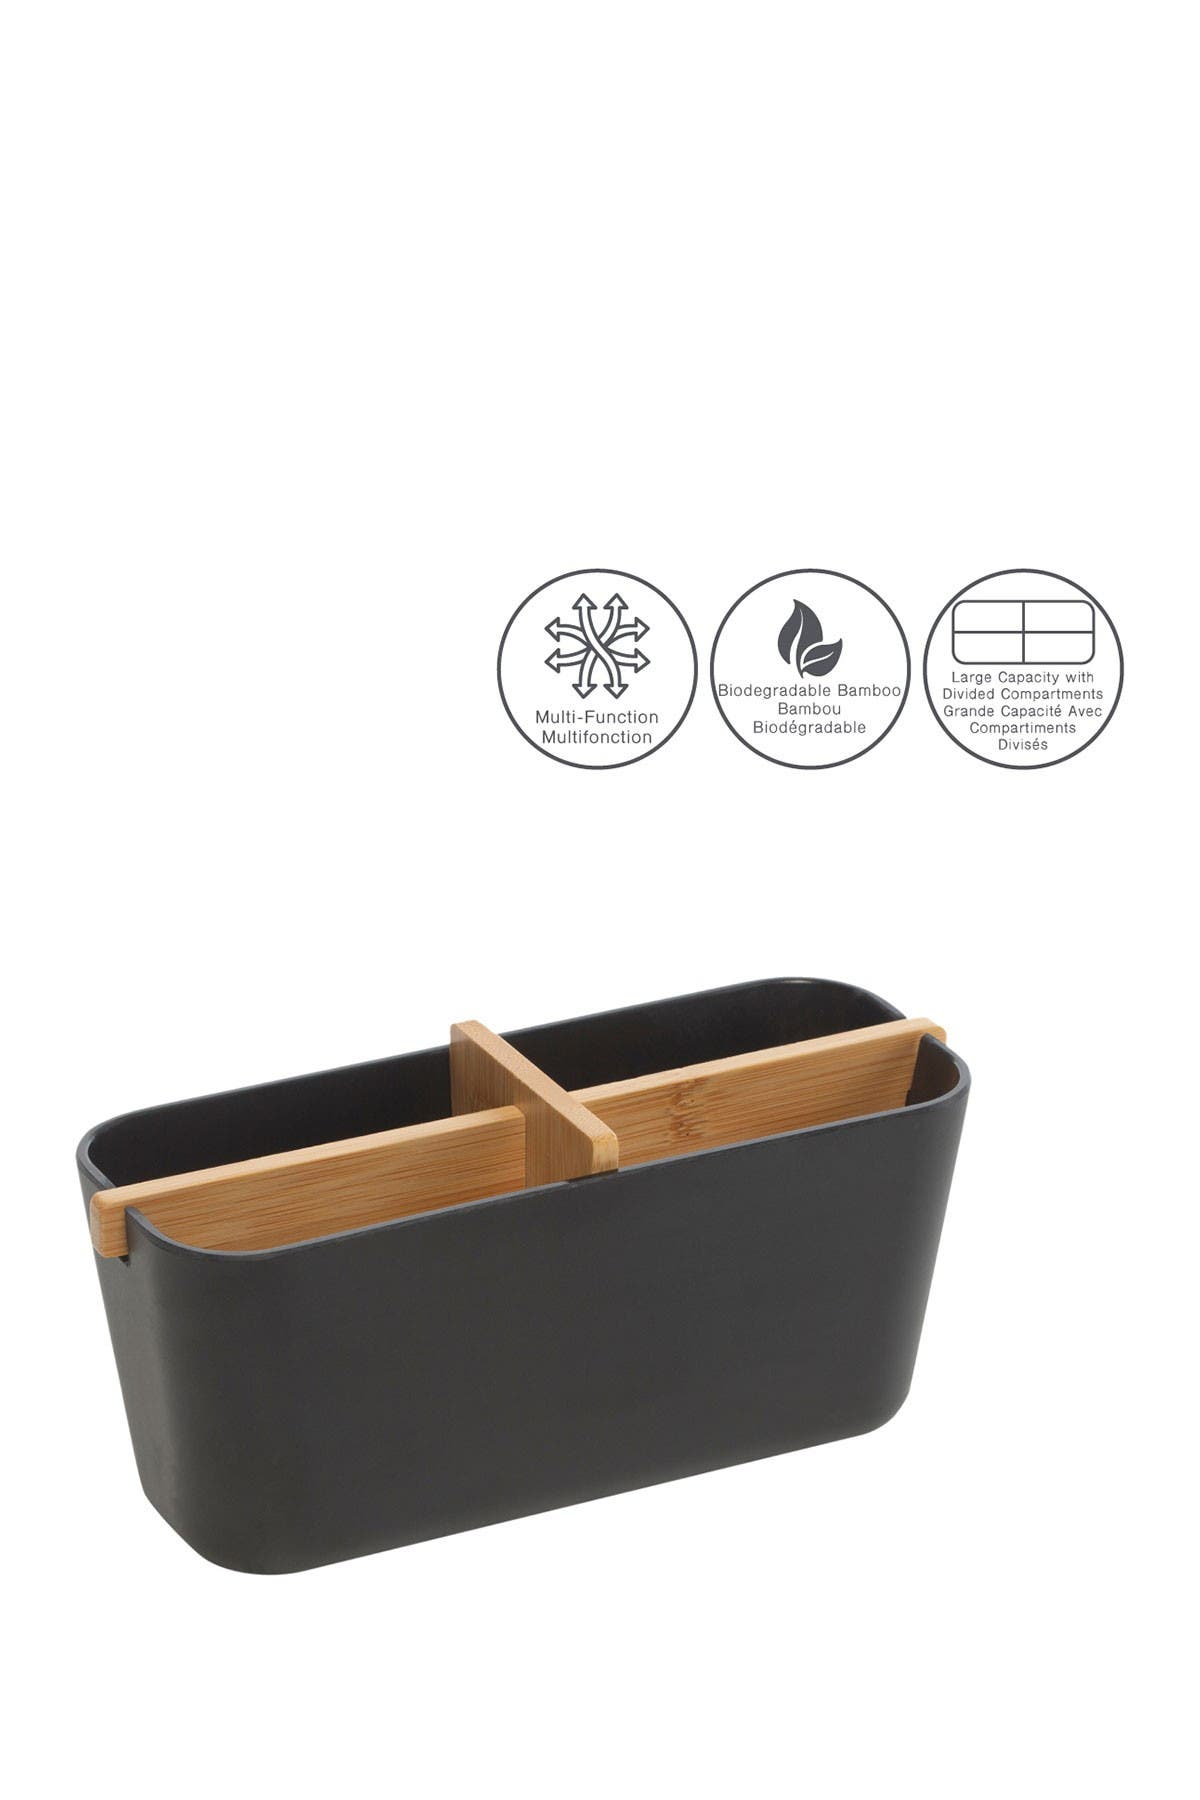 Image of Moda At Home Multifunctional Bamboo Storage Container